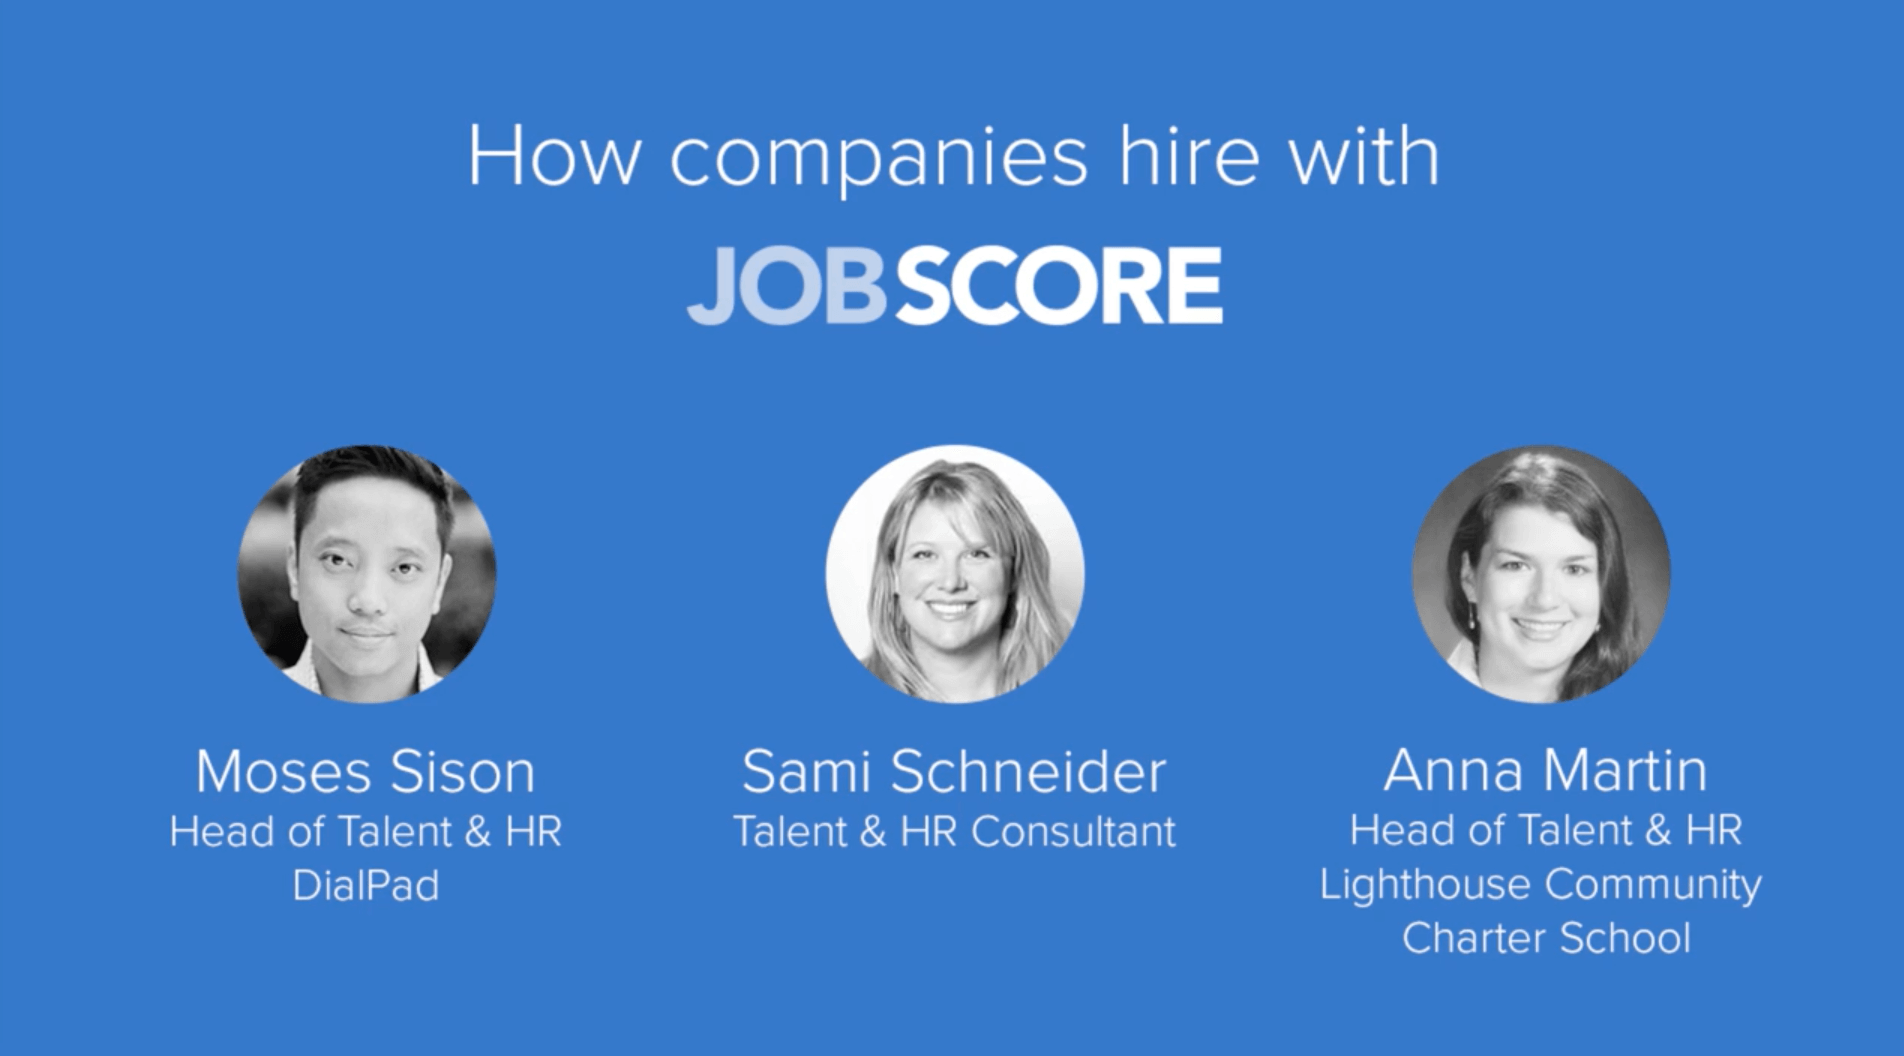 Video reviews of top companies using JobScore Applicant Tracking System.